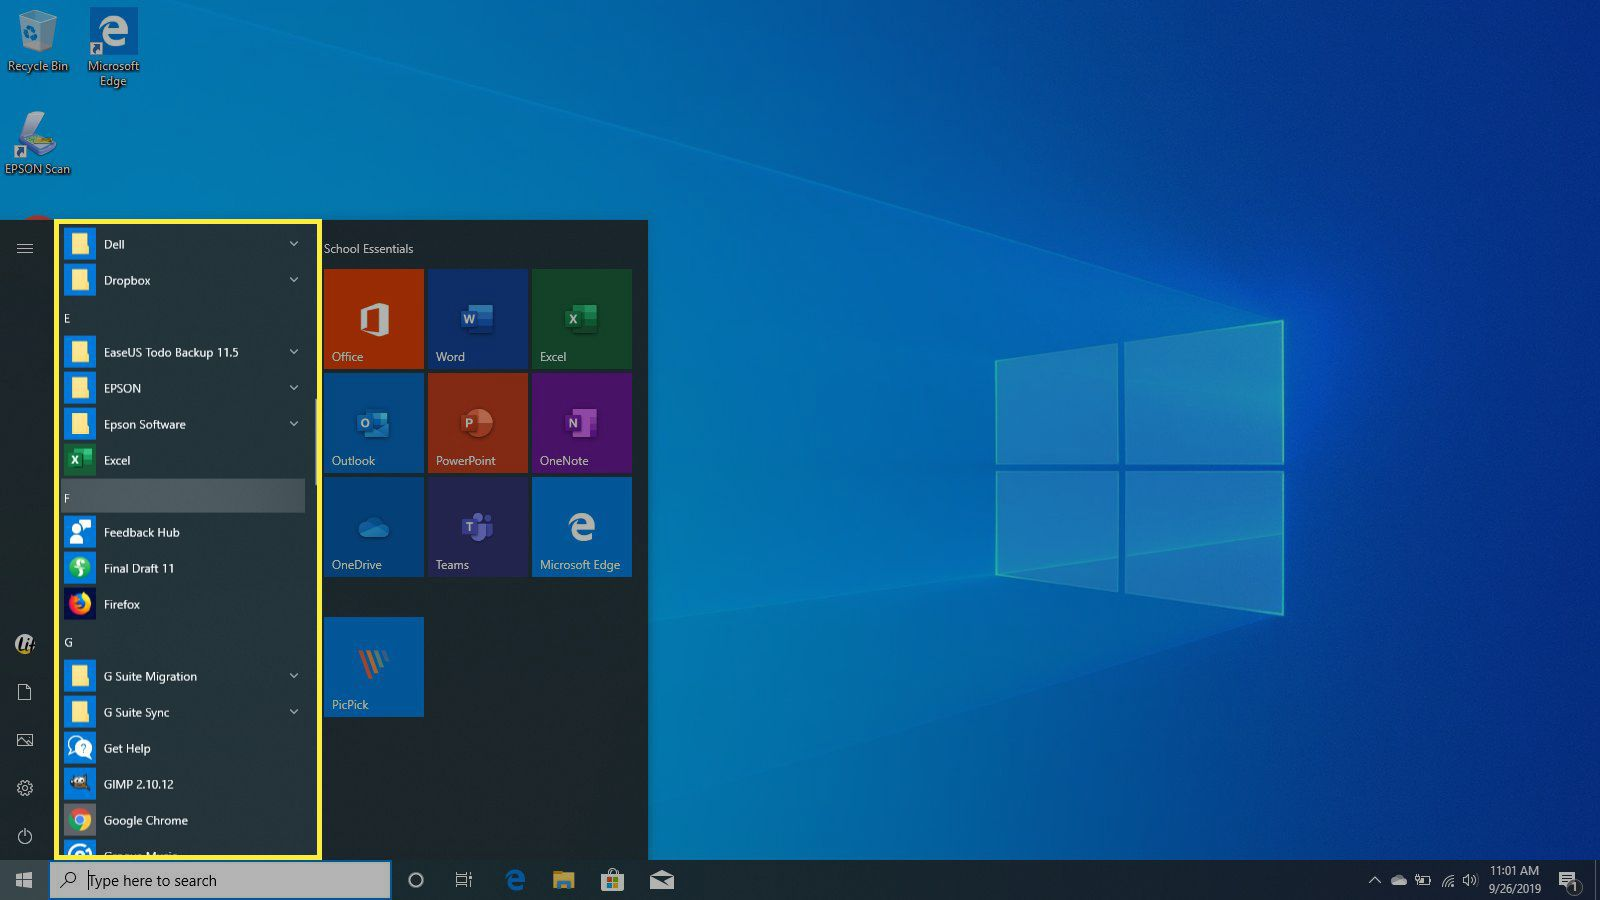 The Apps list in Windows 10